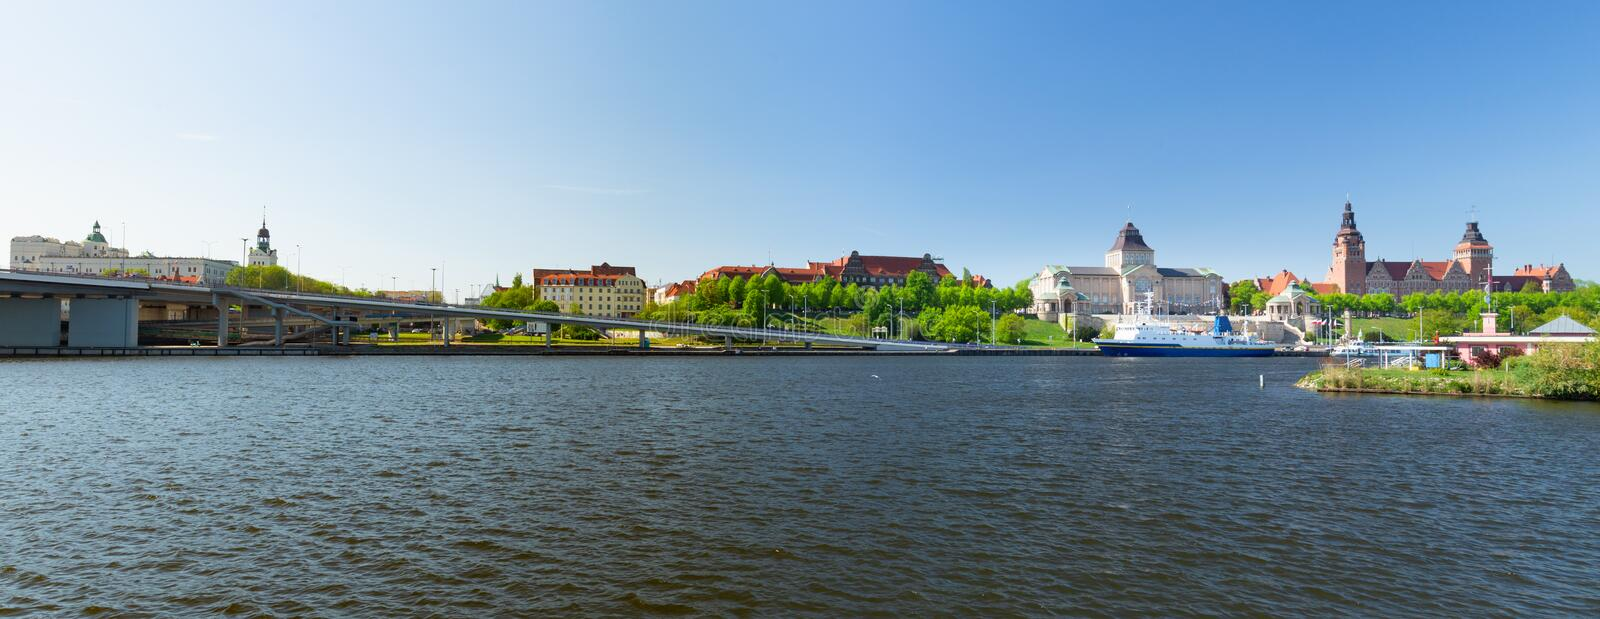 Szczecin, waterfront view of the historical part of the city. Szczecin in Poland waterfront view of the historical part of the city royalty free stock photography